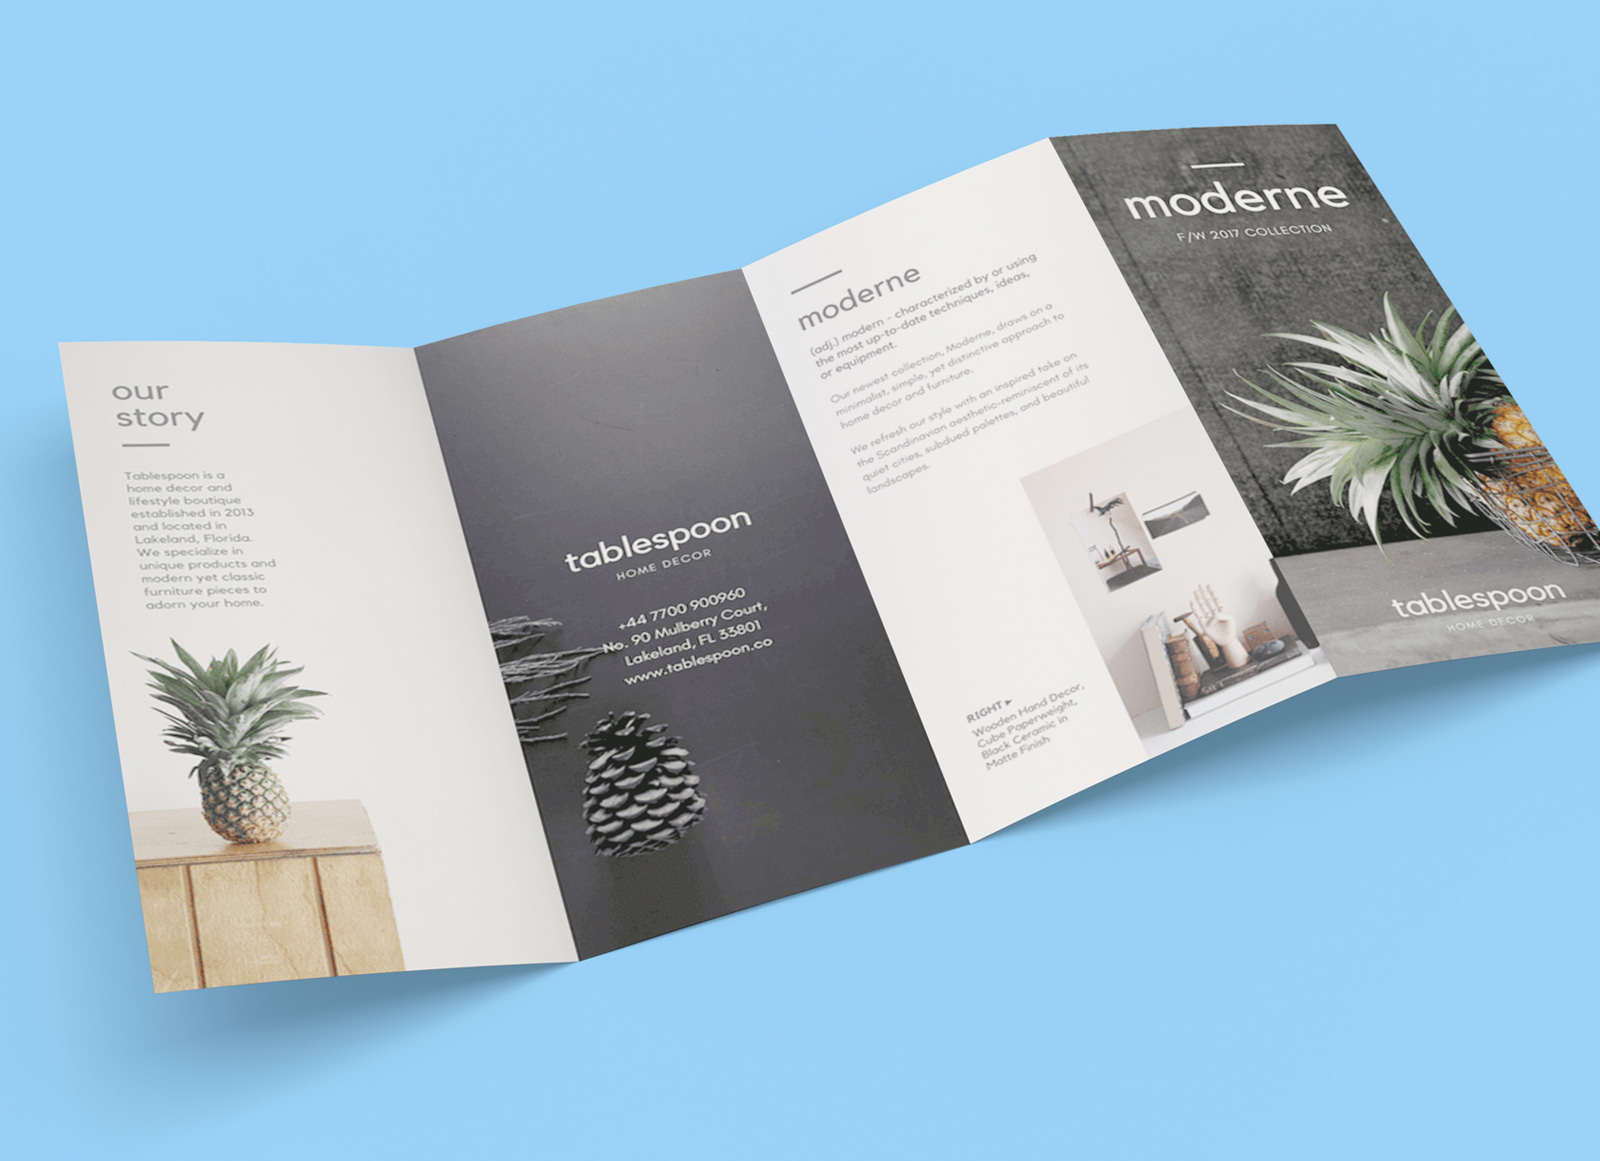 Four Fold Brochure Templates Free Download DTemplates - 2 fold brochure template free